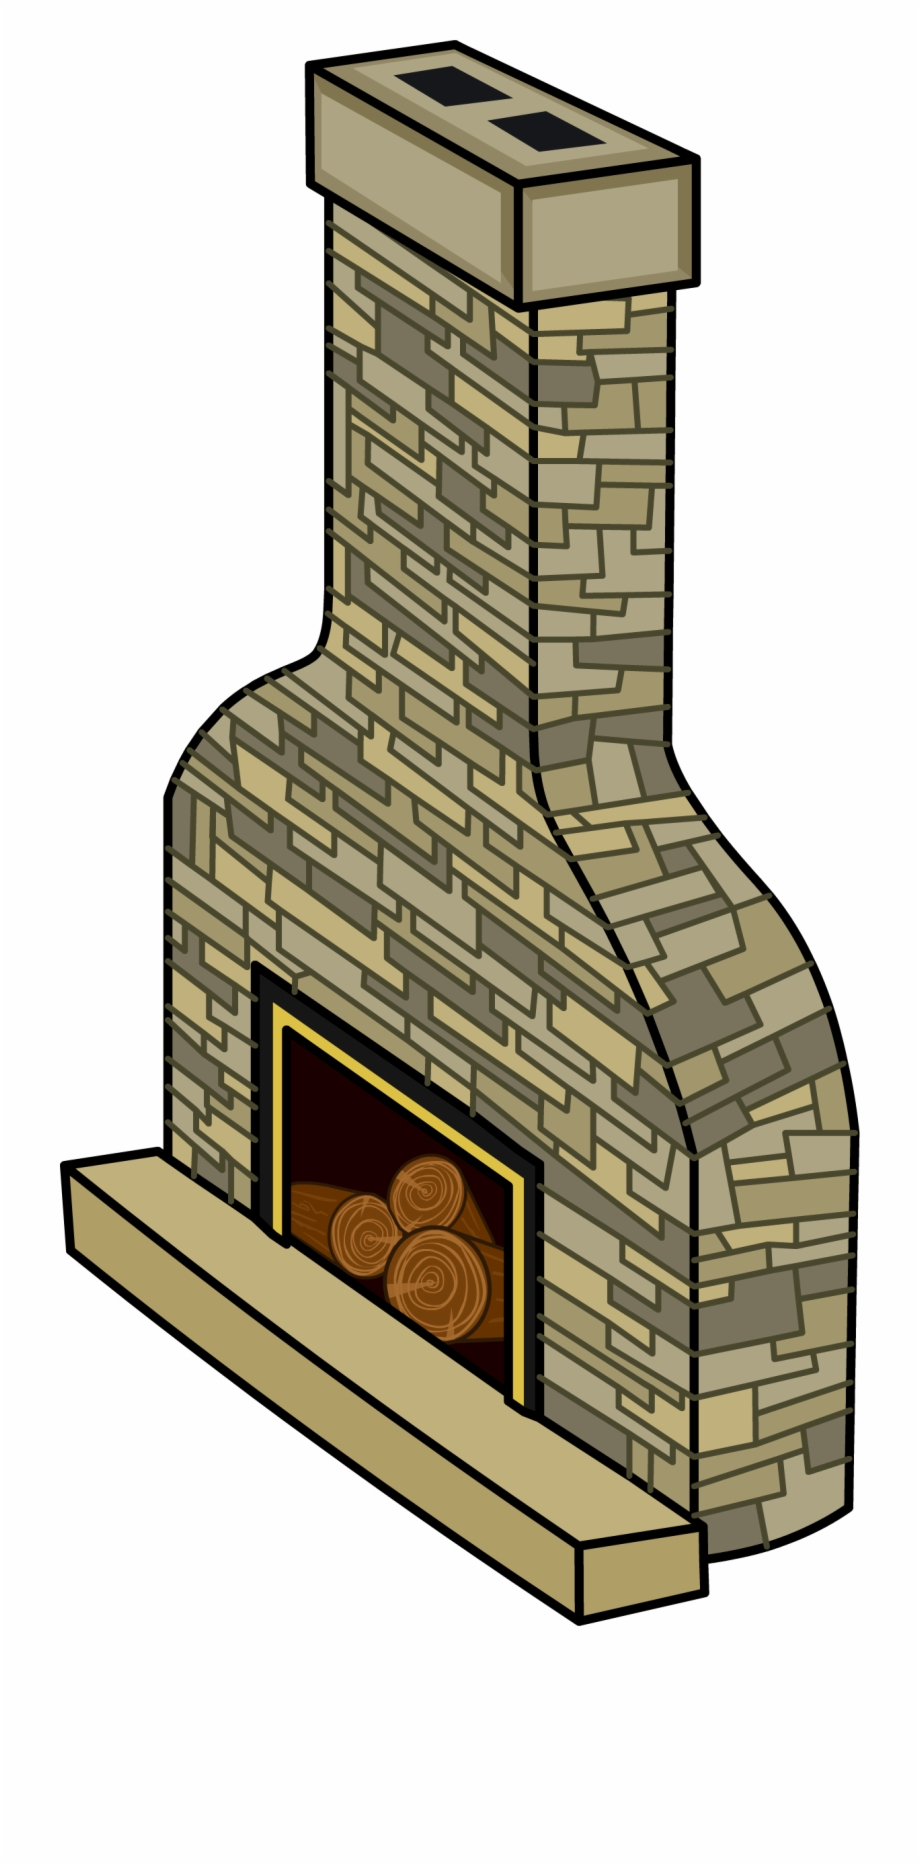 Fireplace clipart cozy fireplace. Free